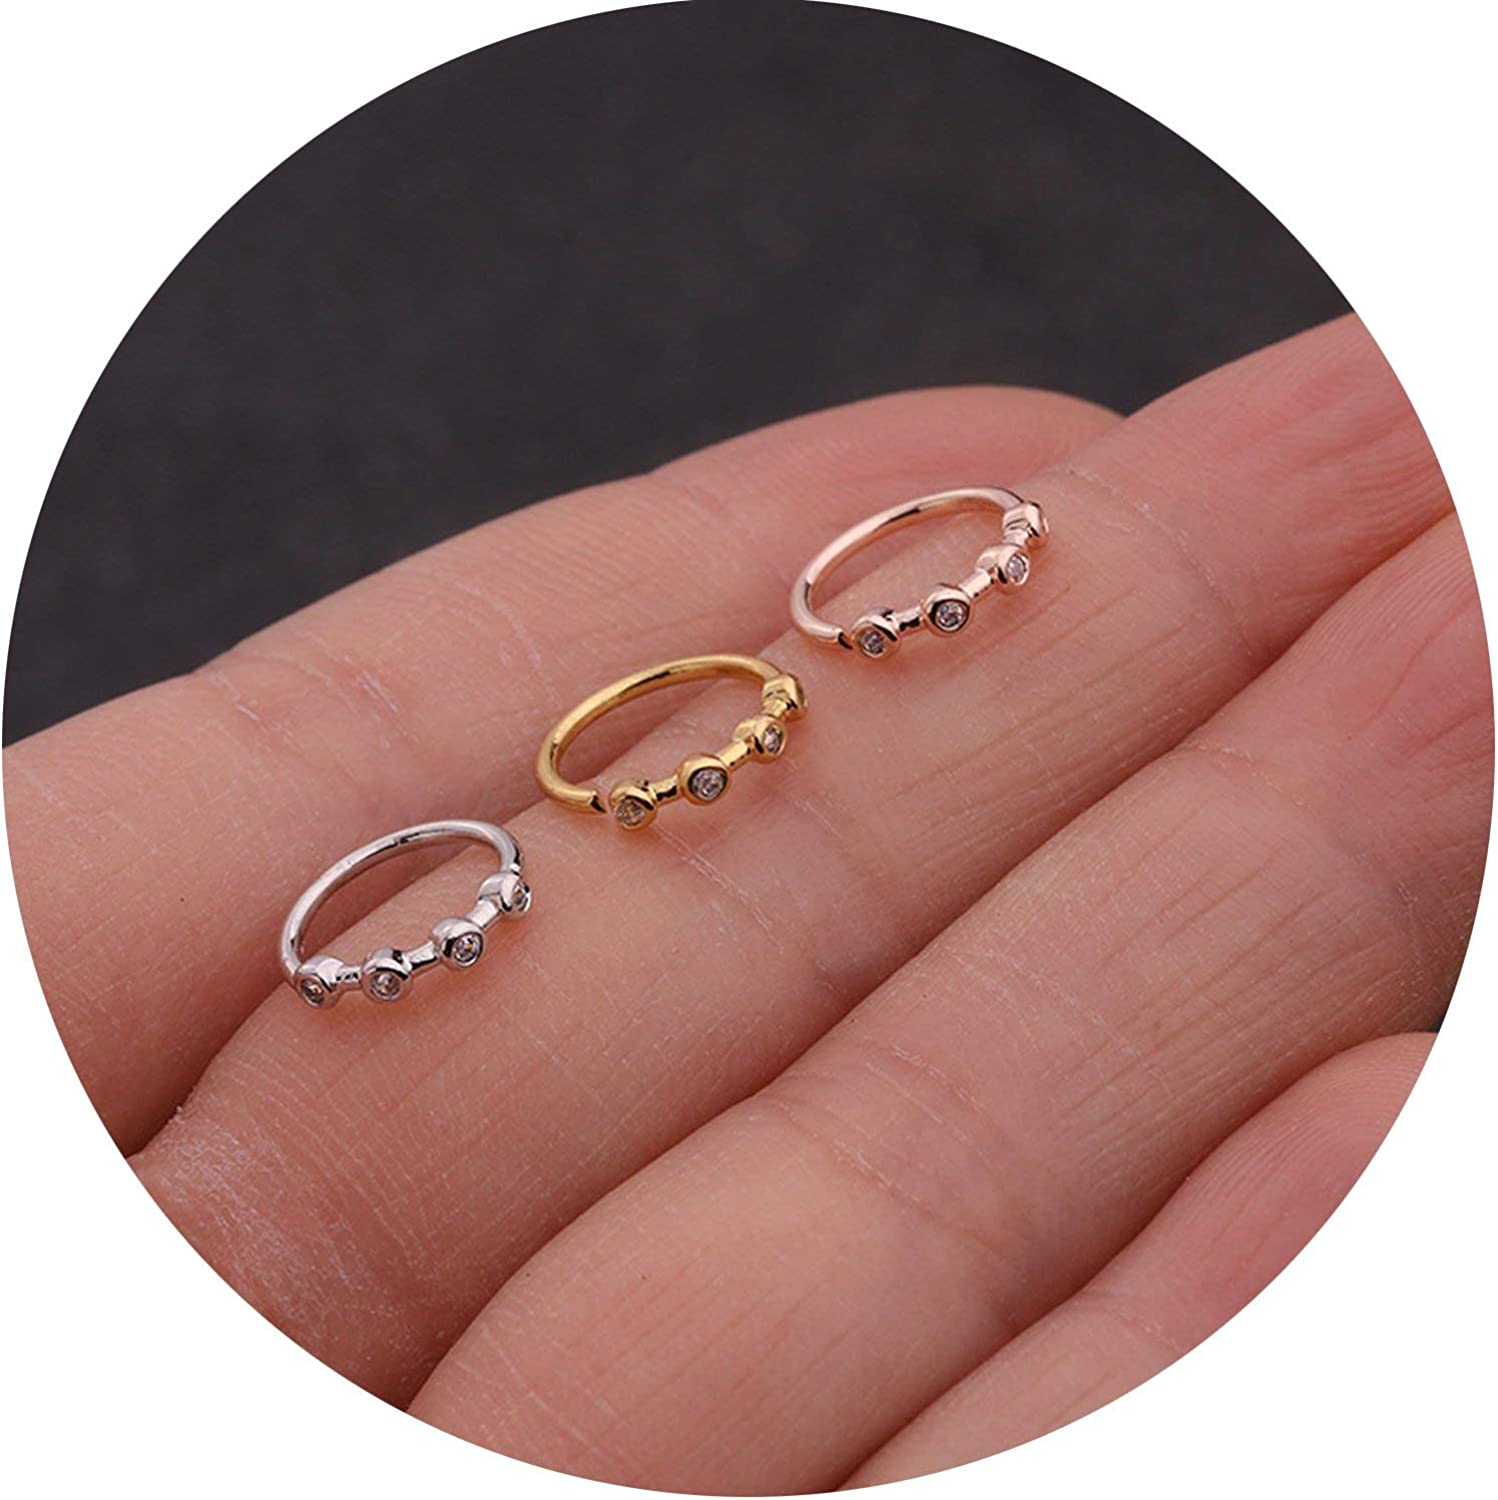 1PC Silver And Gold Color 20gx8mm Nose Piercing Jewelry Cz Nose Hoop Nostril Ring Flower Helix Cartilage Tragus Earring,yellow gold,flower